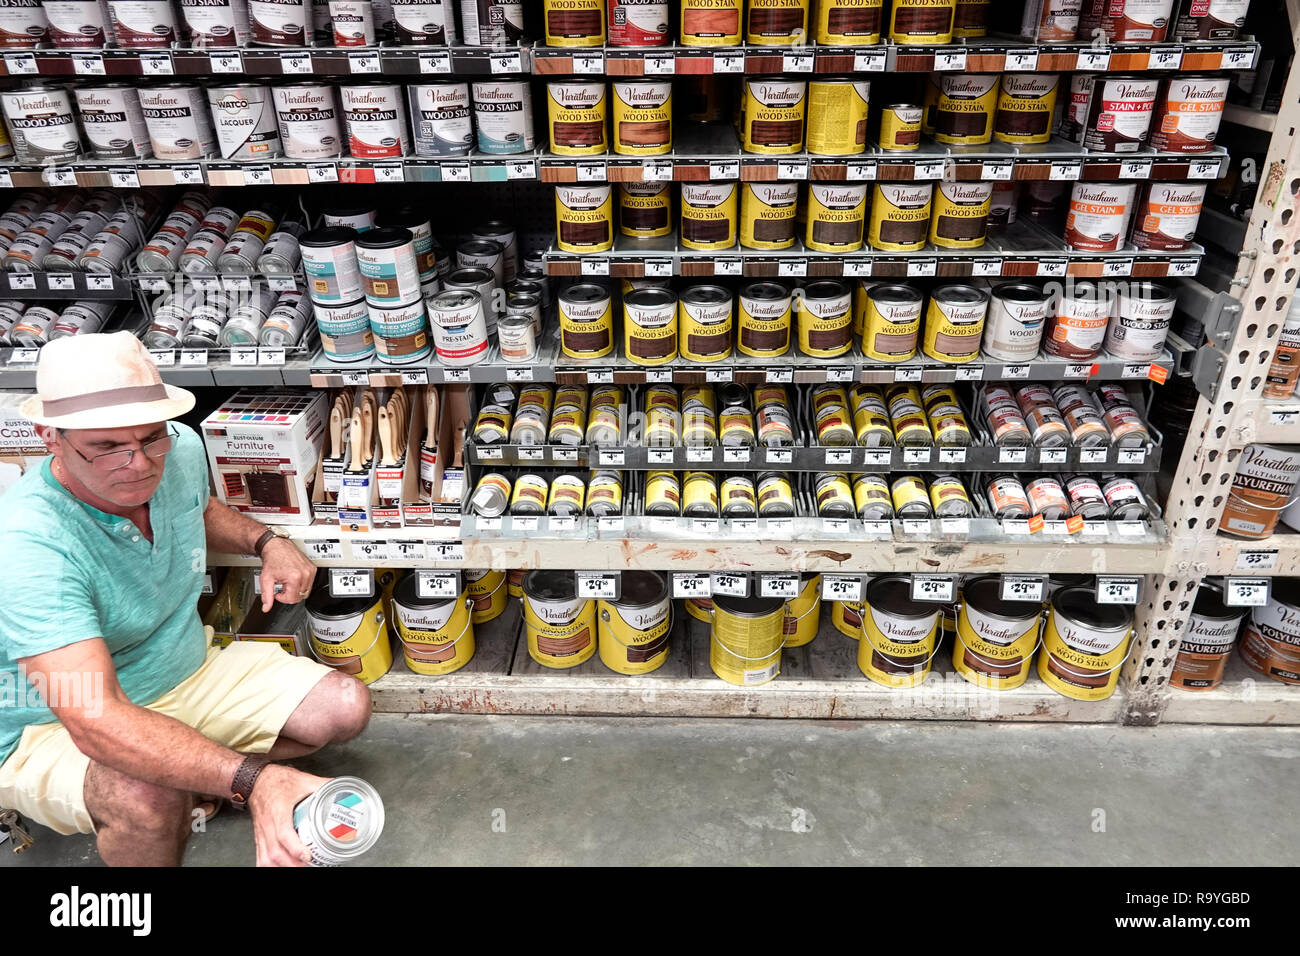 Miami Florida The Home Depot inside hardware big box store do it yourself shopping display sale shelves wood stain Varathane man customer looking read - Stock Image